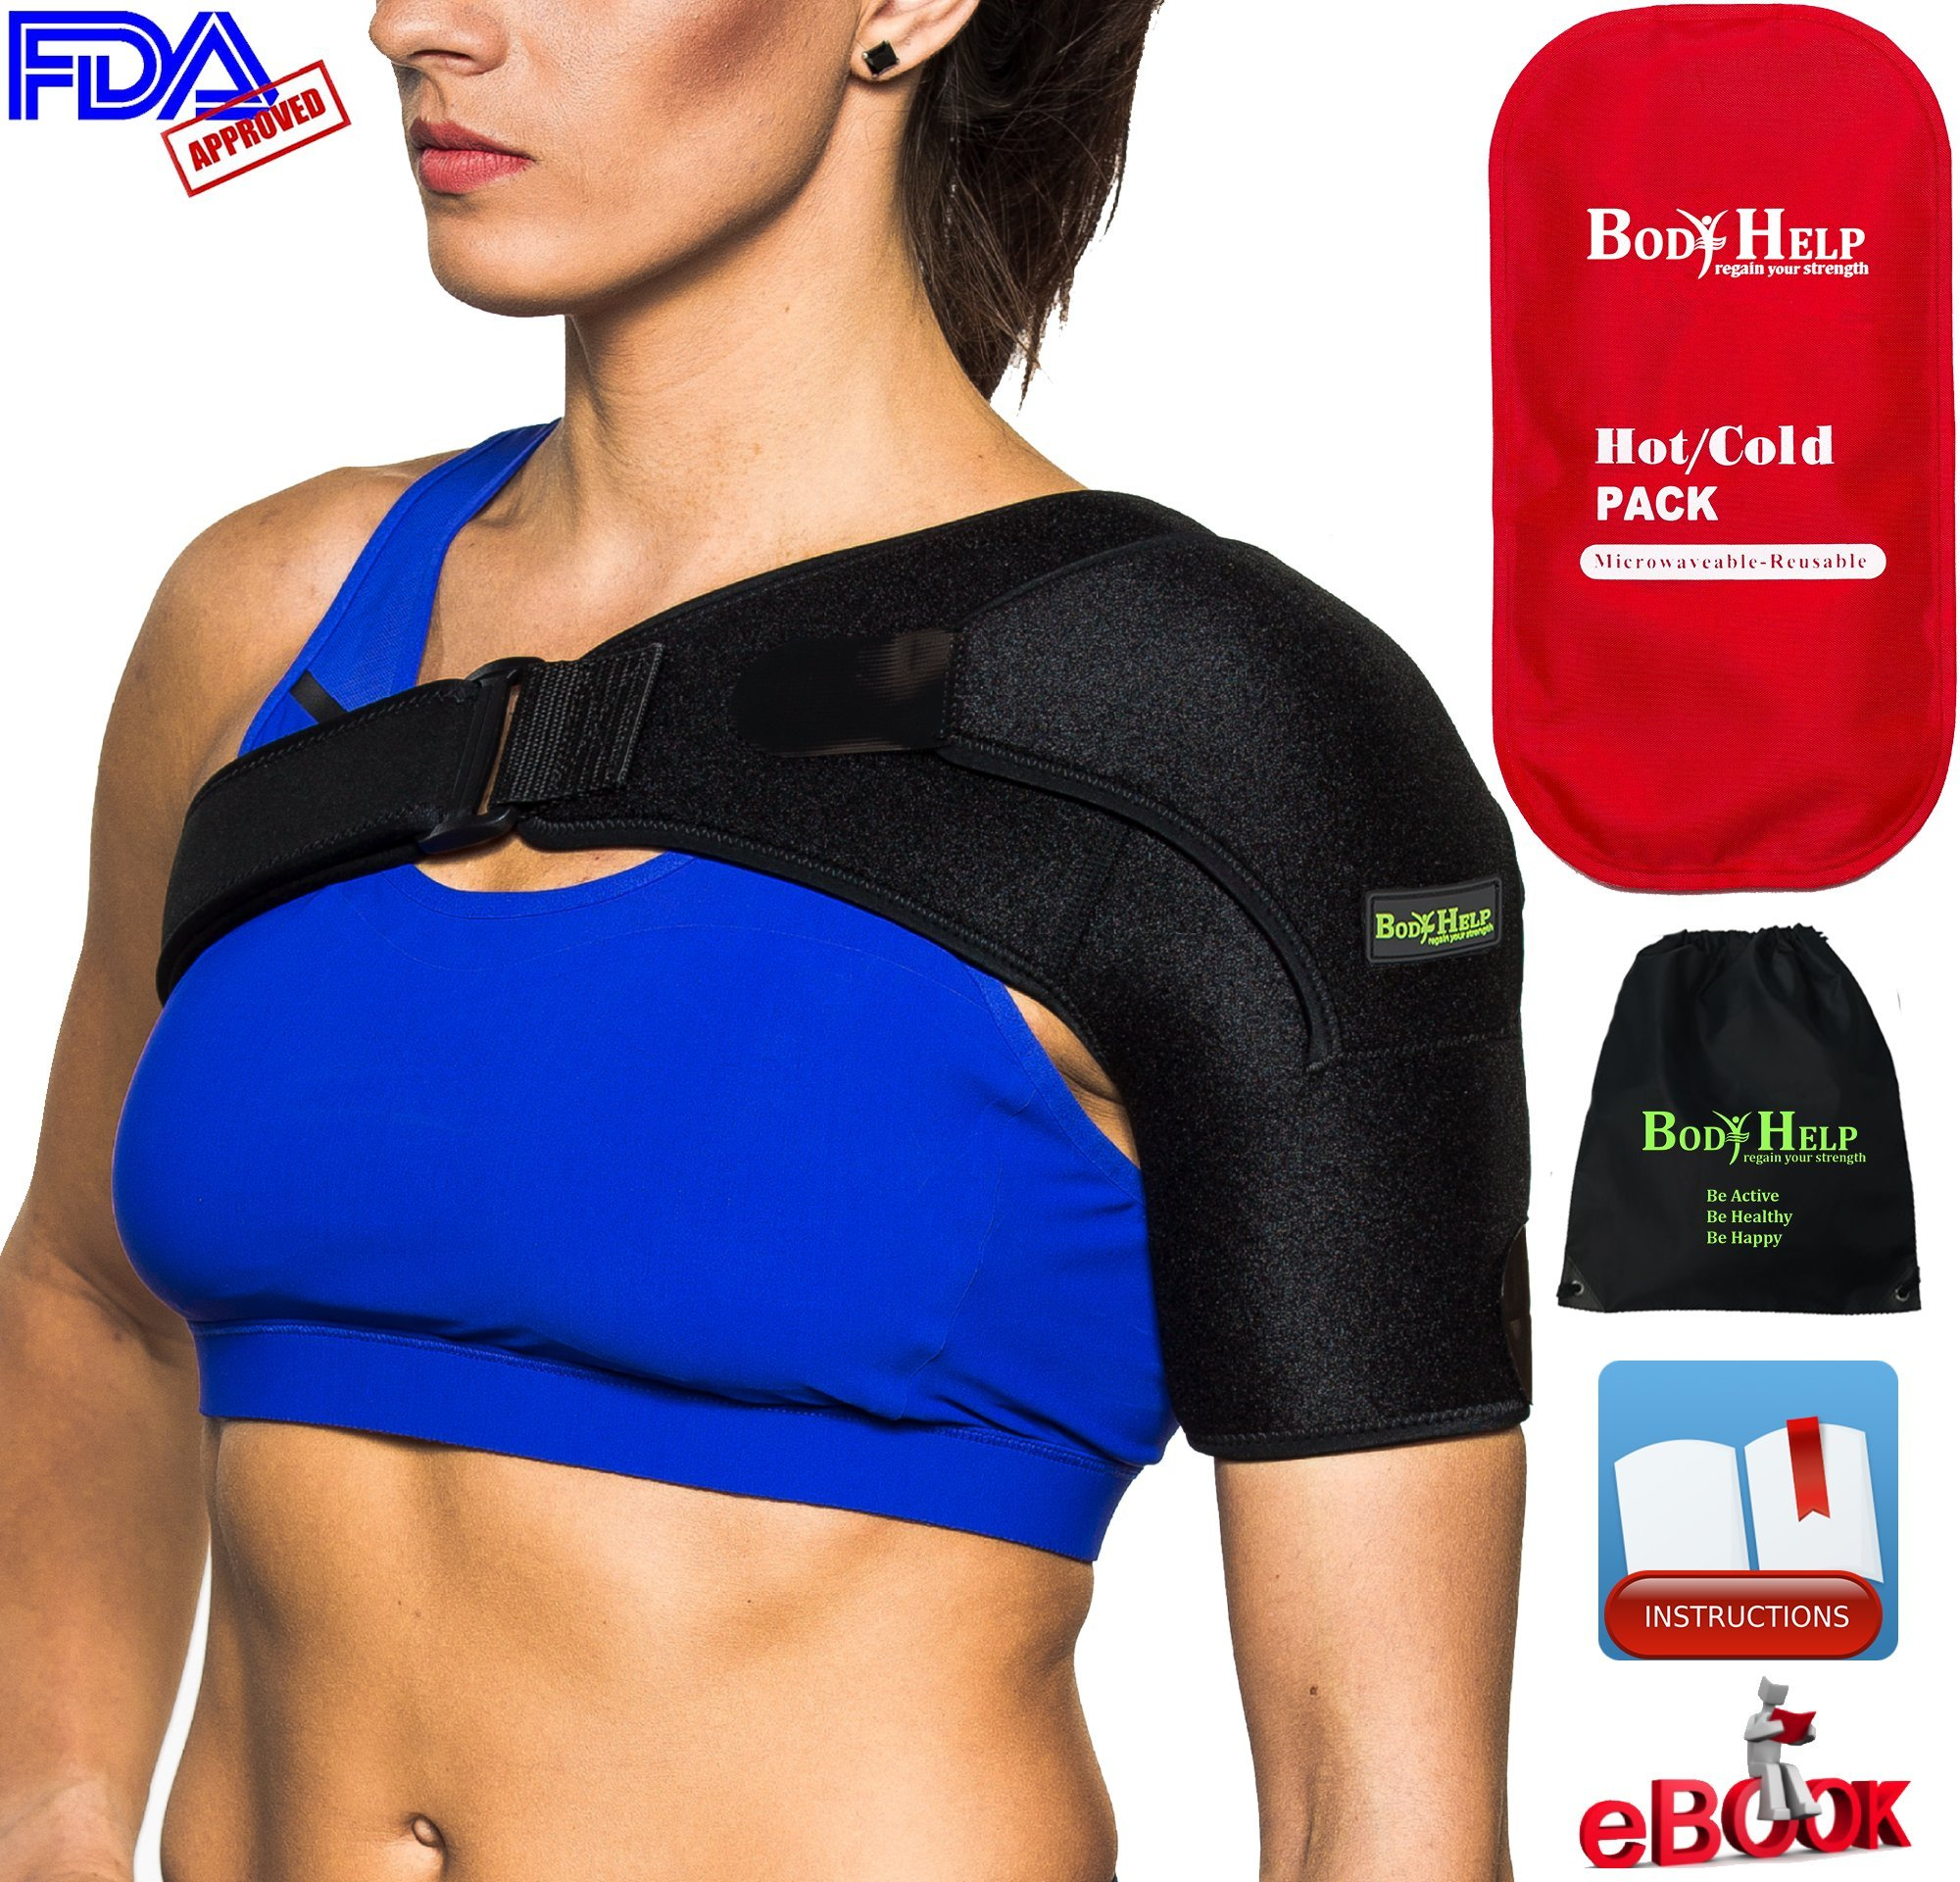 BODY HELP Shoulder Brace Support with Pressure Pad + Hot Cold Reusable Pack for Immediate Pain Relief + Bag + Ebook + Instructions Best Wrap for Rotator Cuff, Dislocated AC, Sprain, Soreness, Bursitis by Body Help